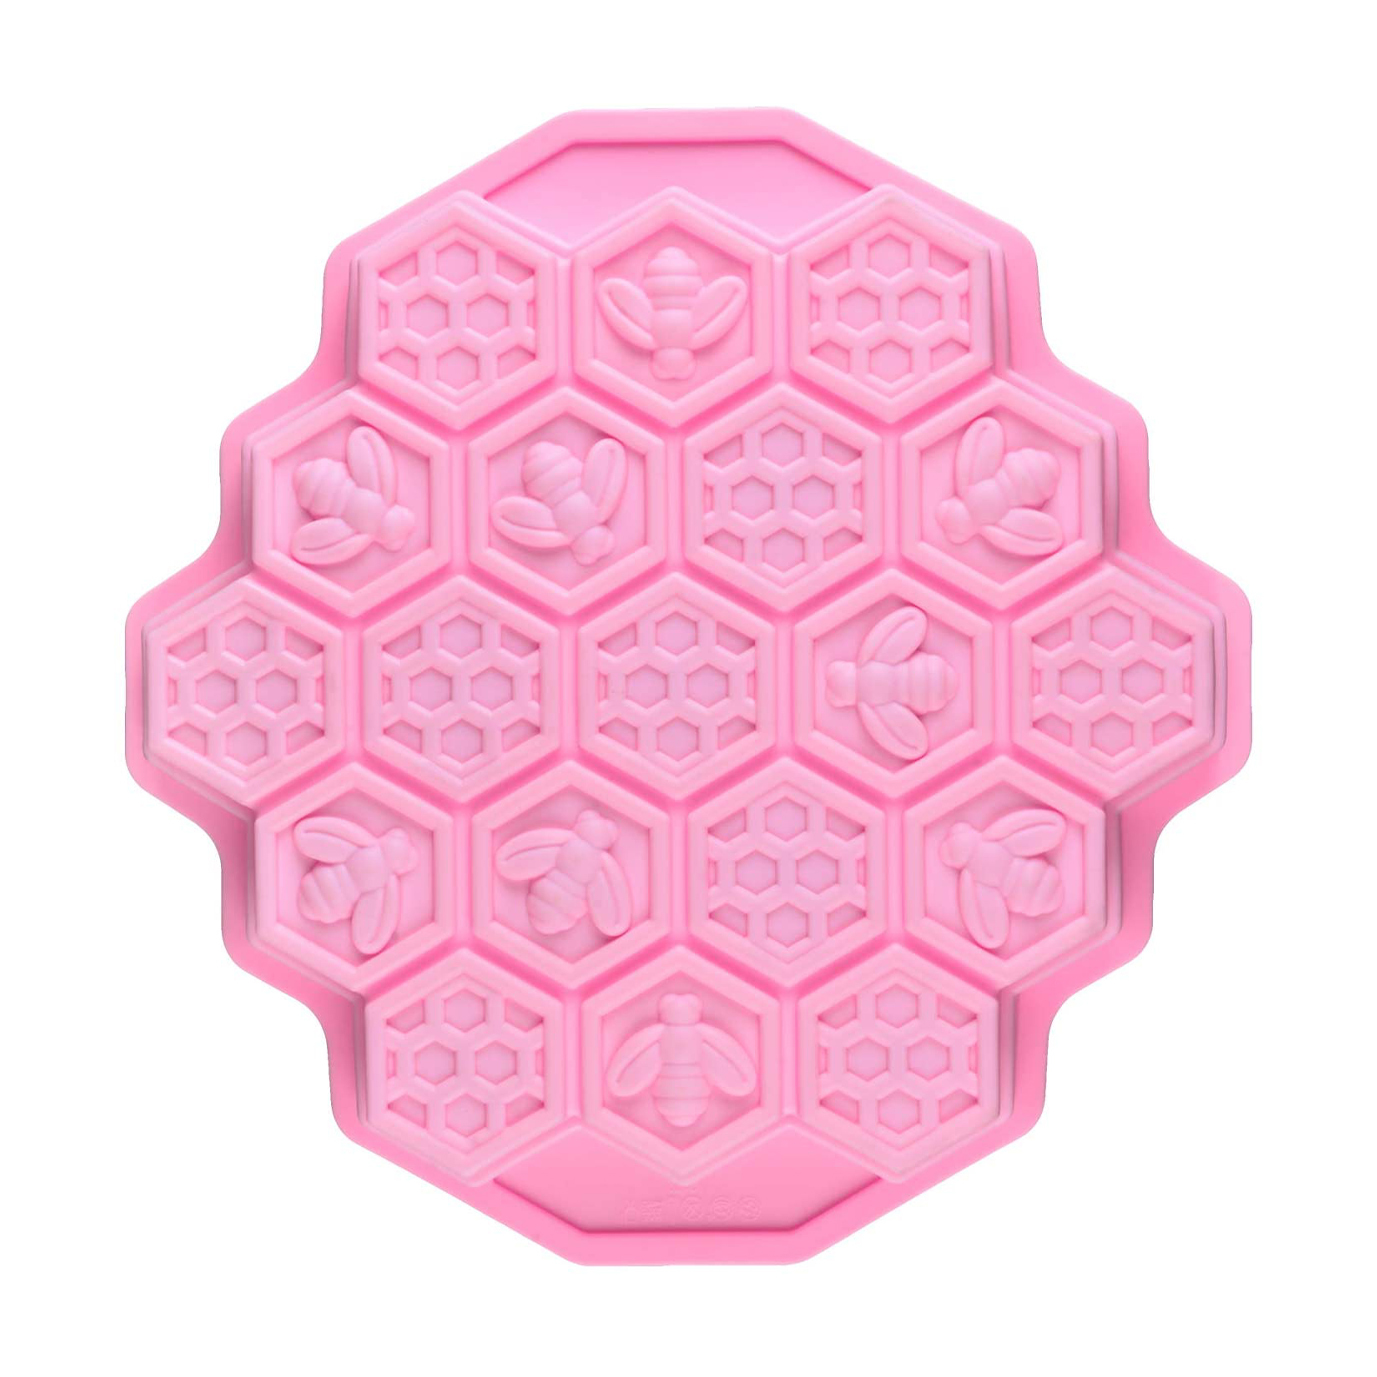 Silicone 19 Cavity Honeycomb Mould